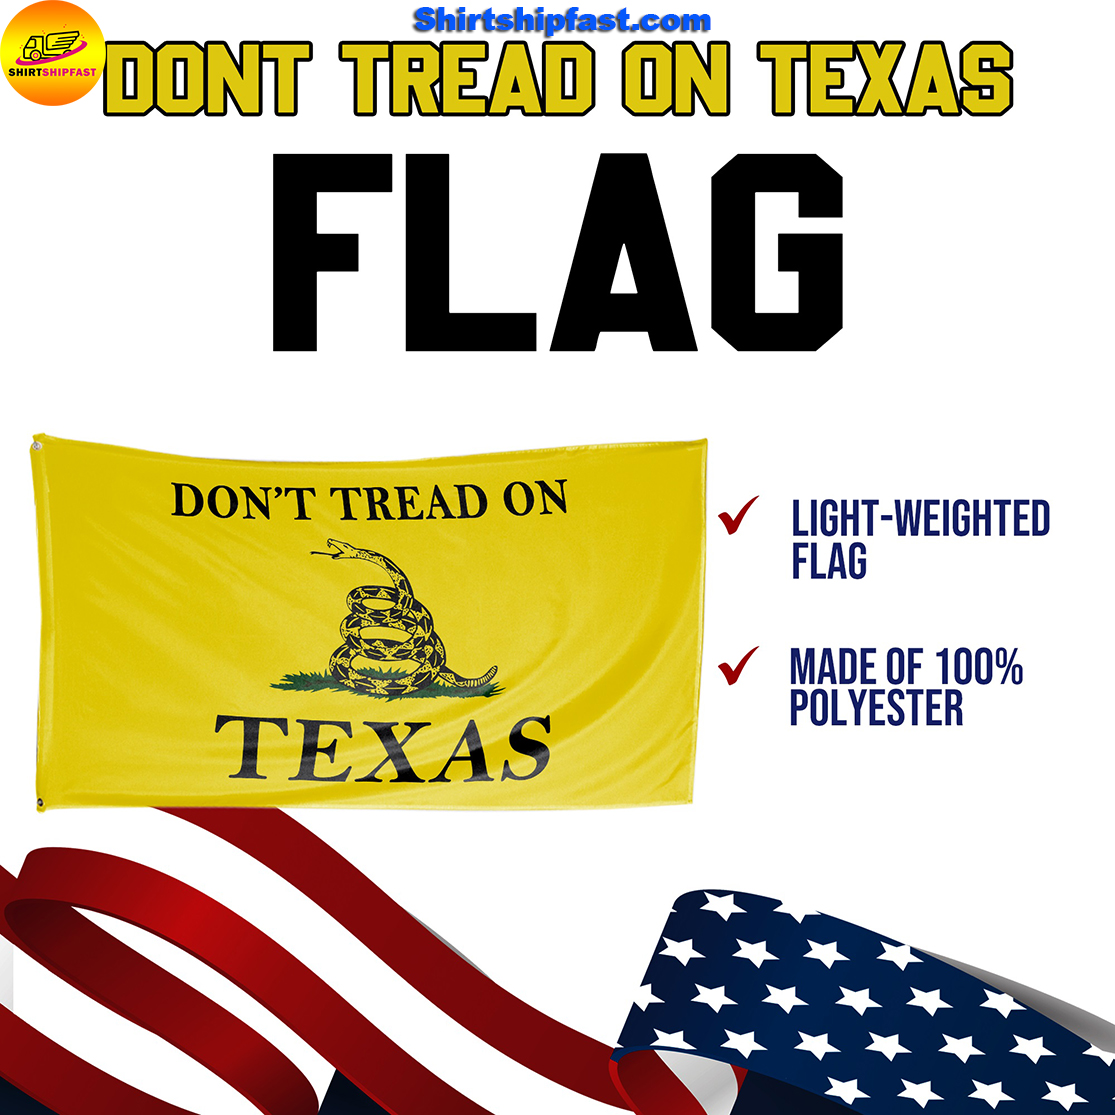 Don't tread on Texas flag - Picture 3